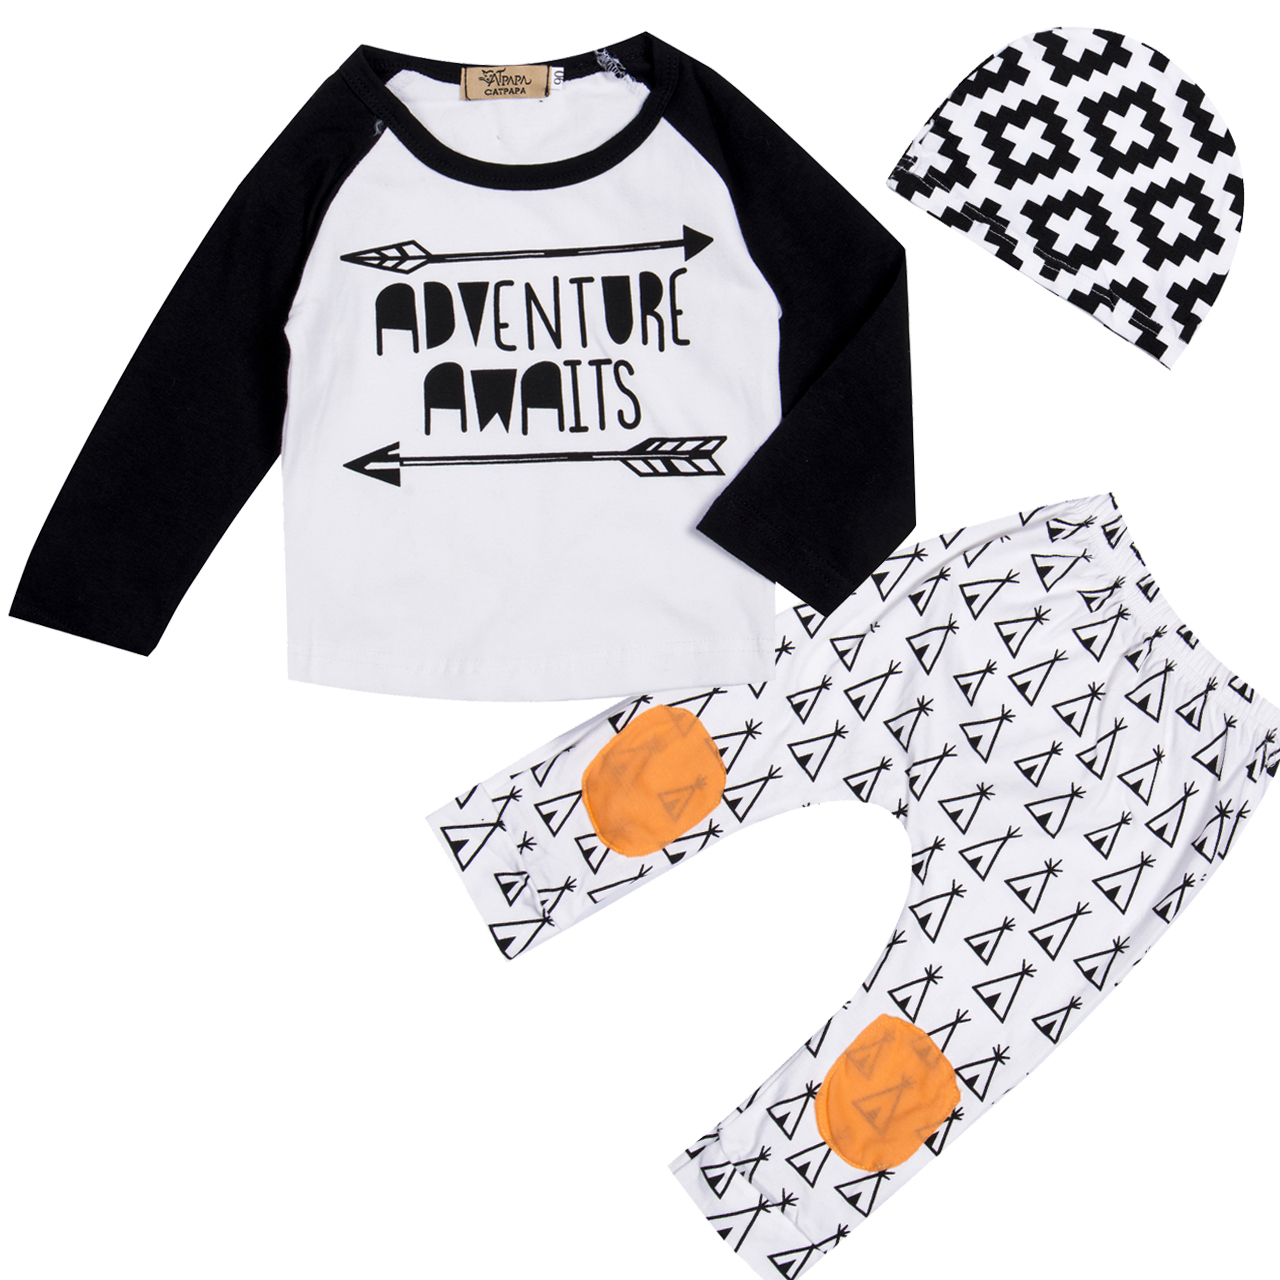 3 Pcs Newborn Kids Baby Girl Boy Letter Arrows Clothing Sets Infant Babies Long Sleeve Tops+Tents Pants+Hat Outfits Set Clothes newborn 0 3 months baby boy girl 5 pcs clothing set cotton cartoon monk tops pants bib hats infant clothes